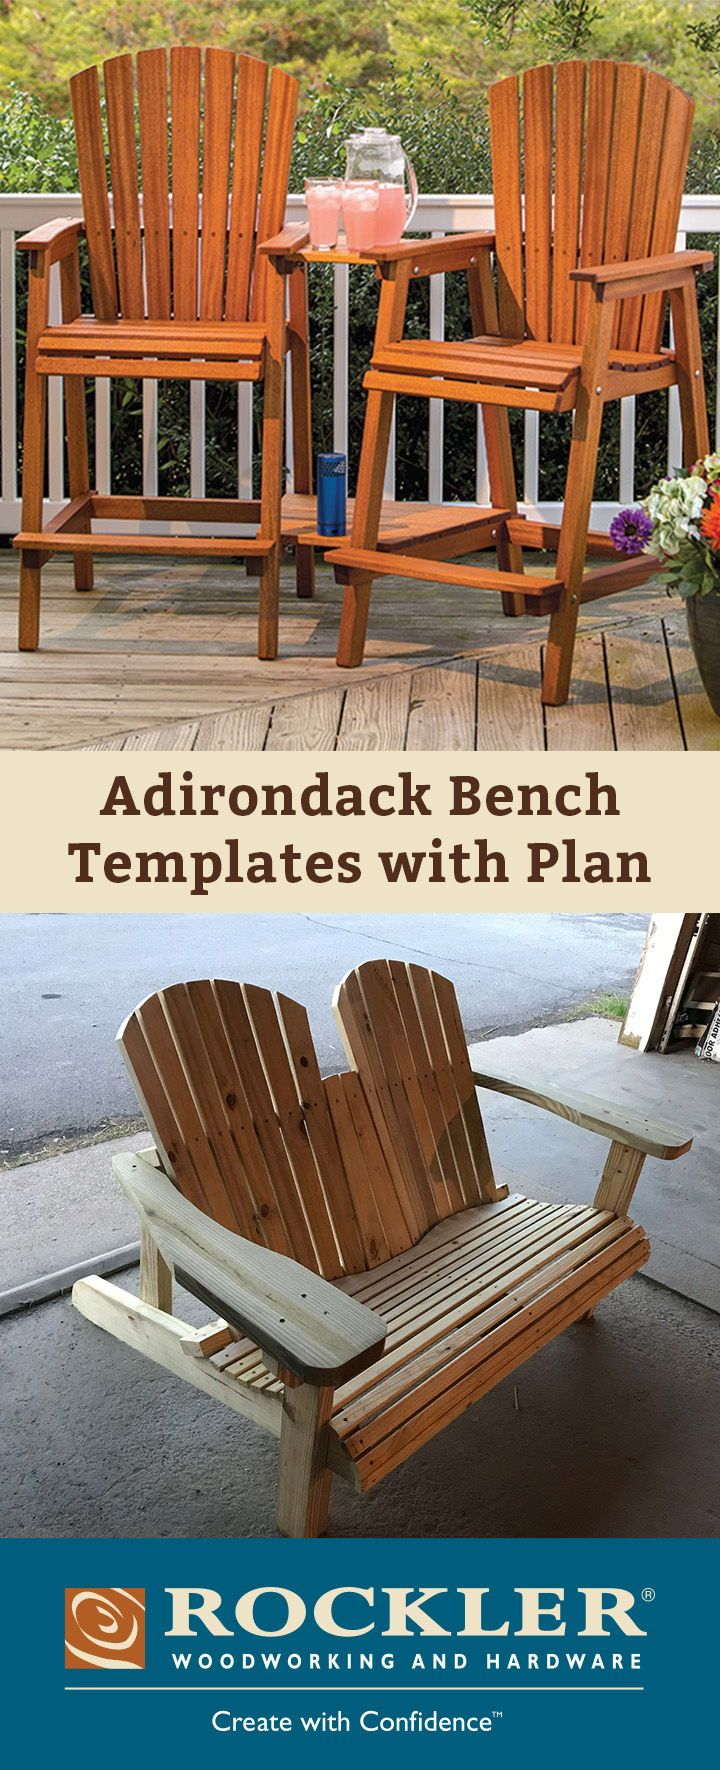 Pin on DIY Woodworking Projects & Hardware